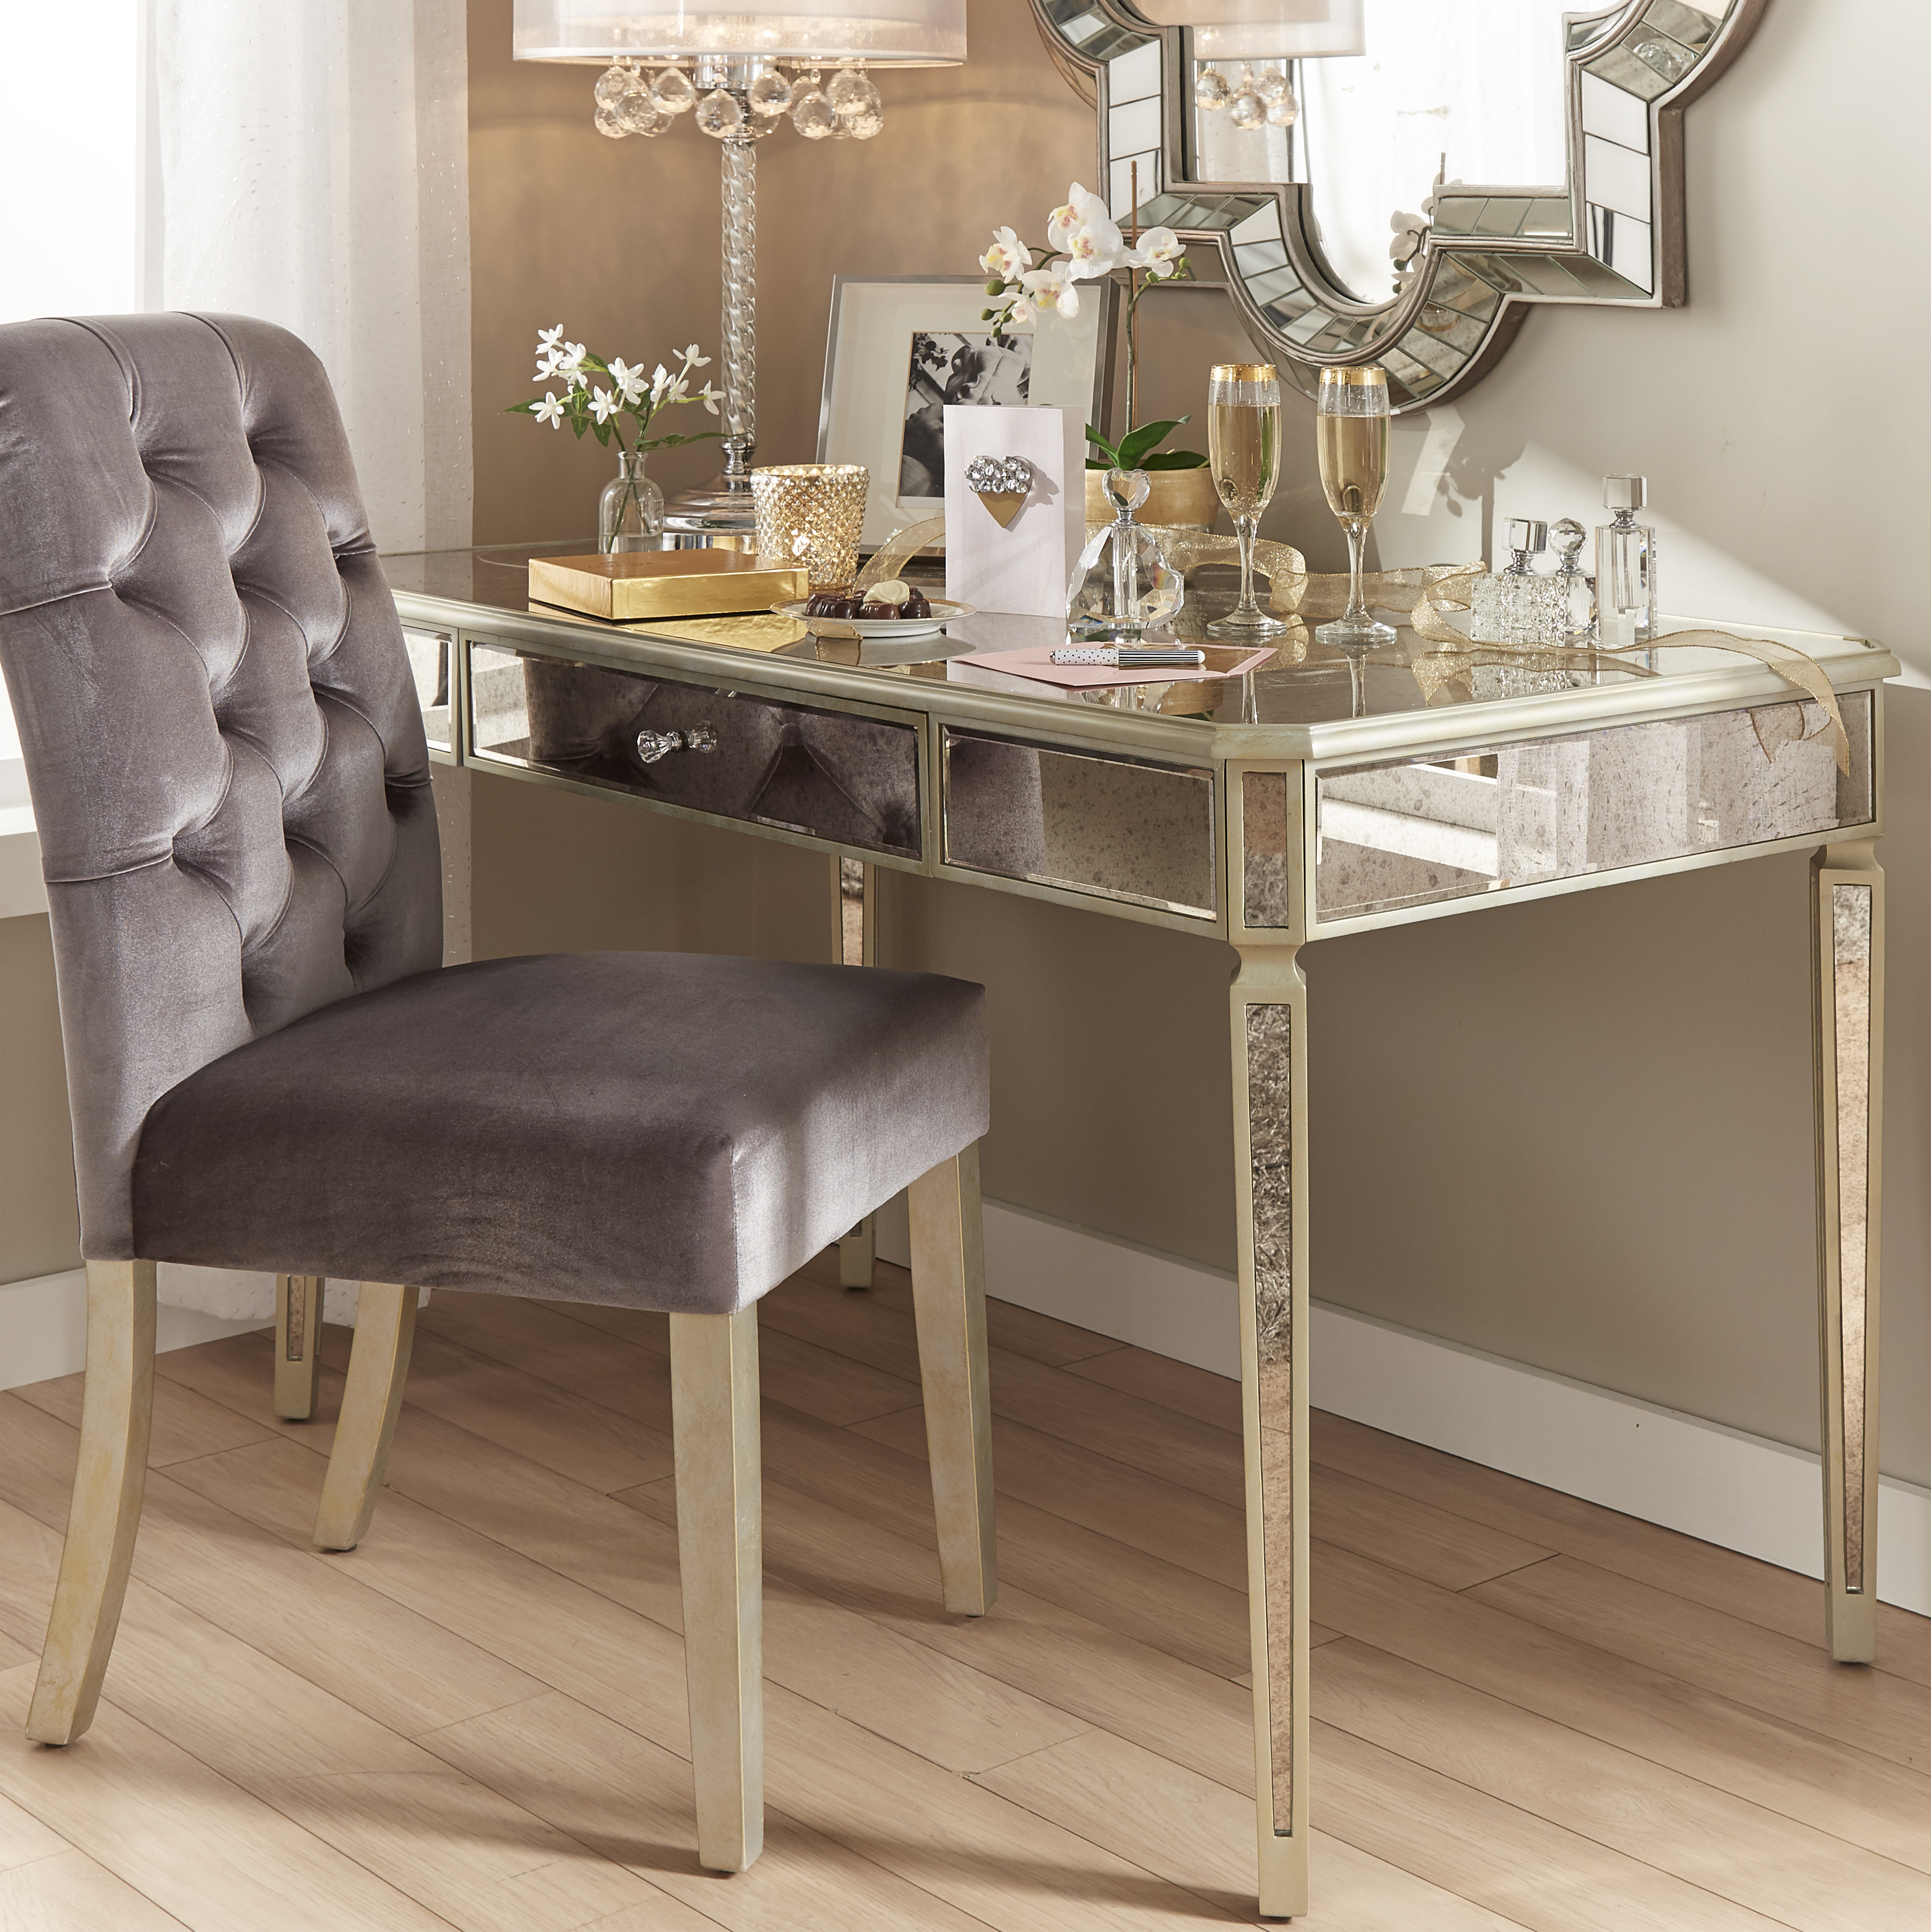 The Antique Mirrored Desk Features A Crystal Knob And Pale Gold . Full resolution‎  photo, nominally Width 4134 Height 4136 pixels, photo with #8E703D.